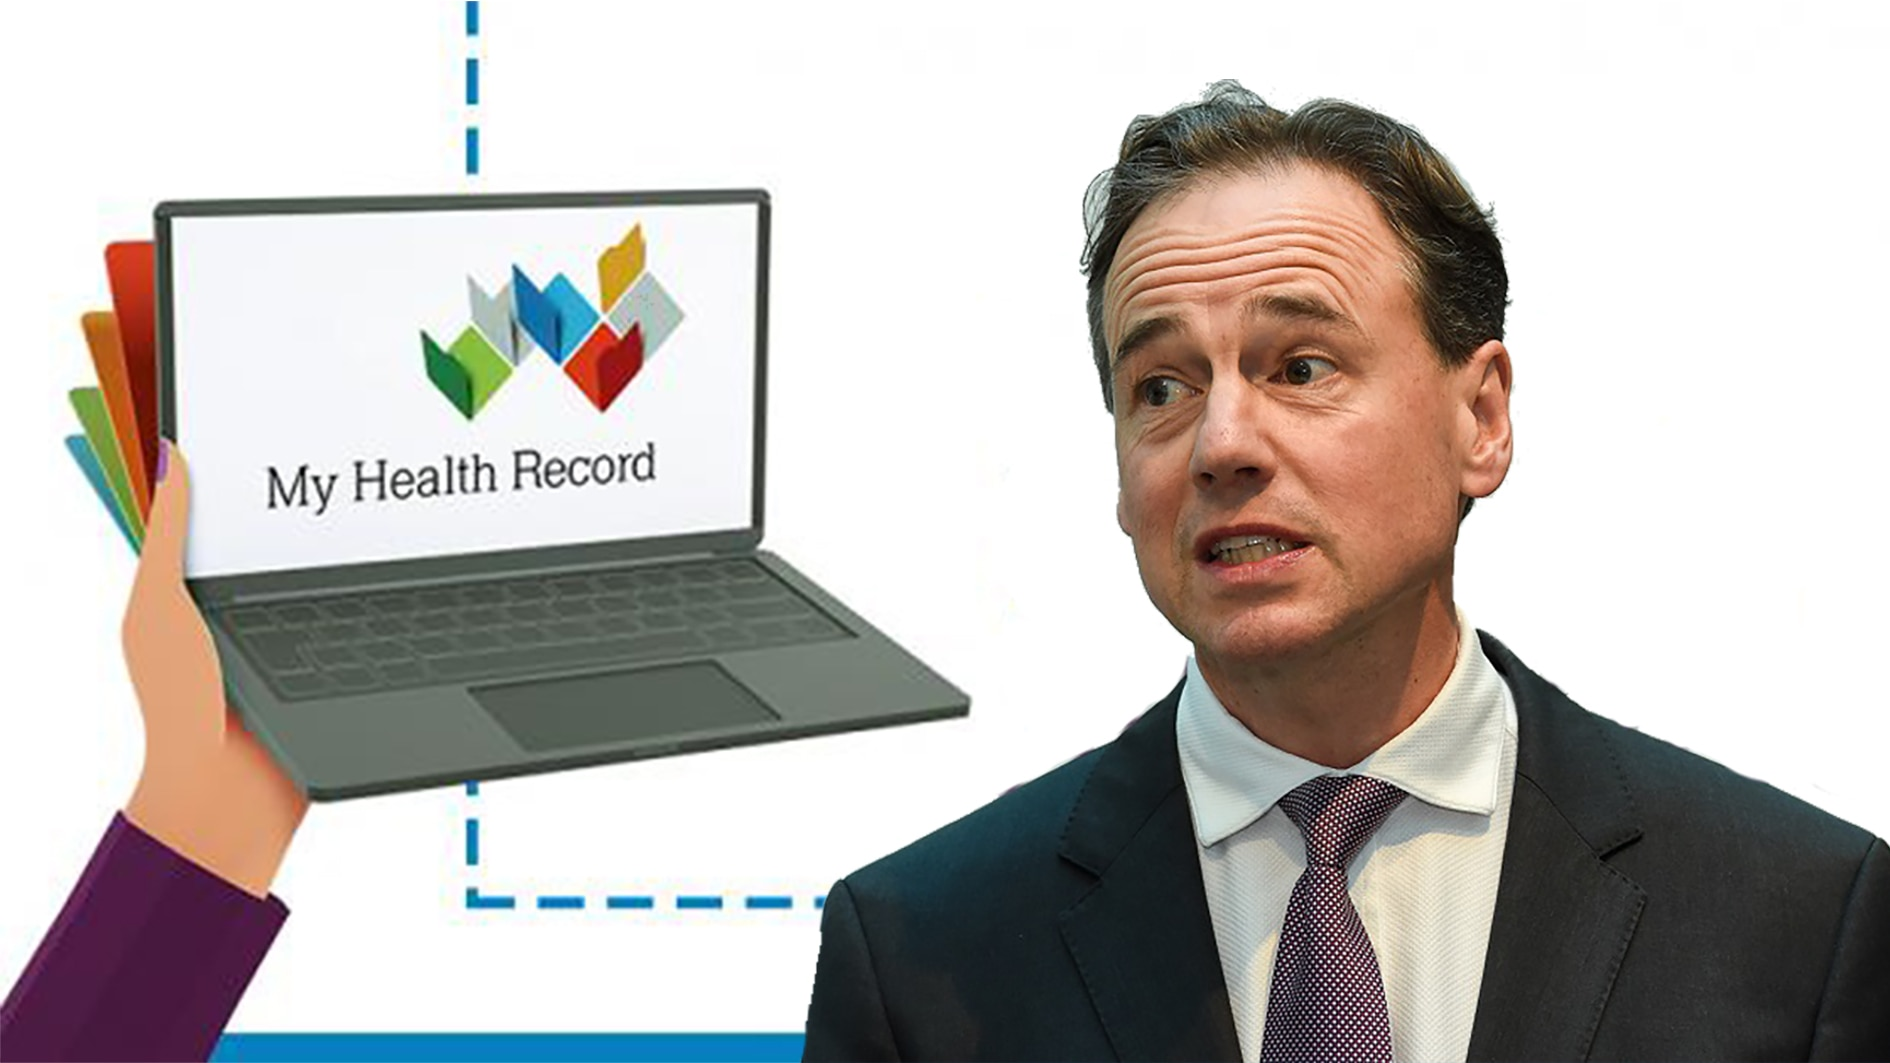 Data breaches linked to My Health Record kept secret